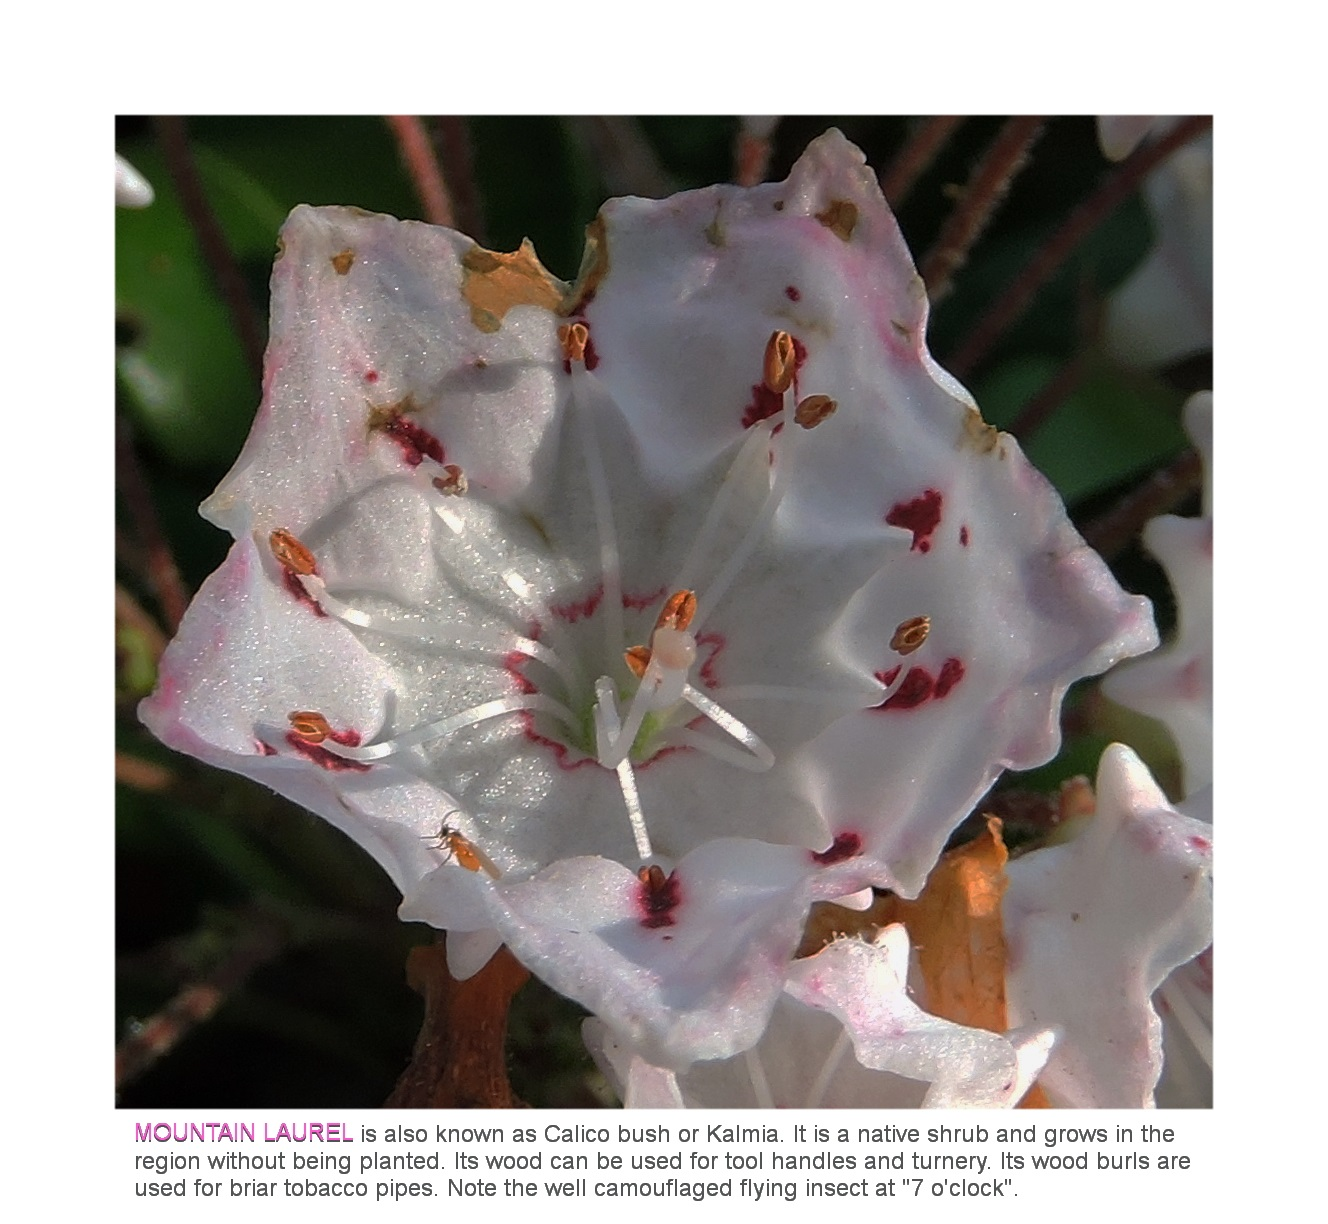 © Mountain Laurel Detail. Photograph by Mina Thevenin. Photography World. www.photographyworld.org